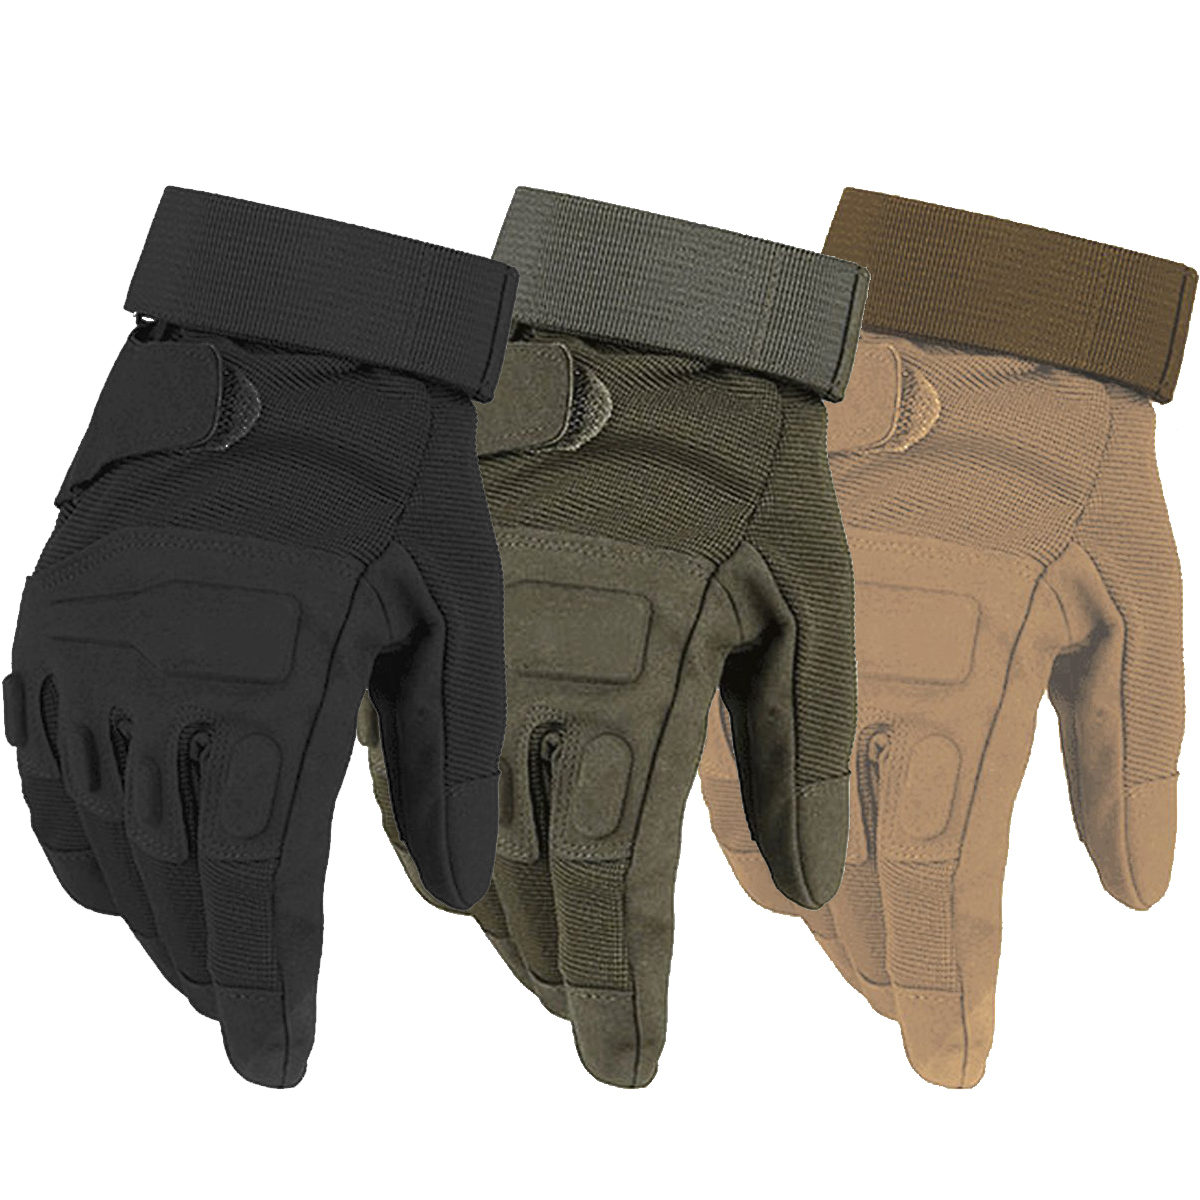 Black leather combat gloves - Black Hawk Tactical Gloves Military Army Paintball Airsoft Combat Shooting Anti Skid Bicycle Full Finger Gloves For Men Women